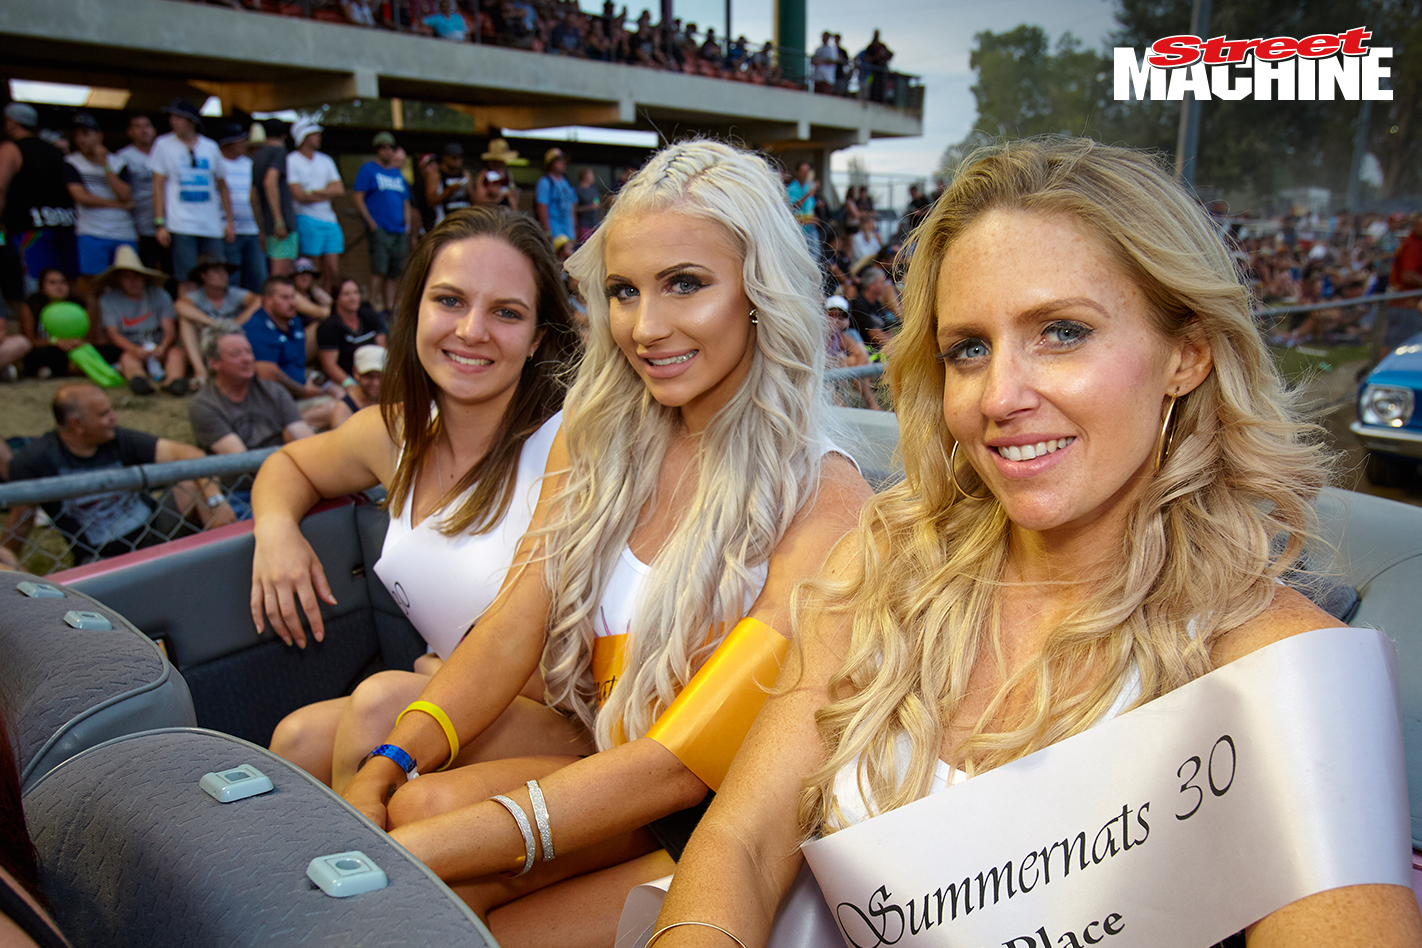 Jazmyne Wardell Miss Summernats 30 1